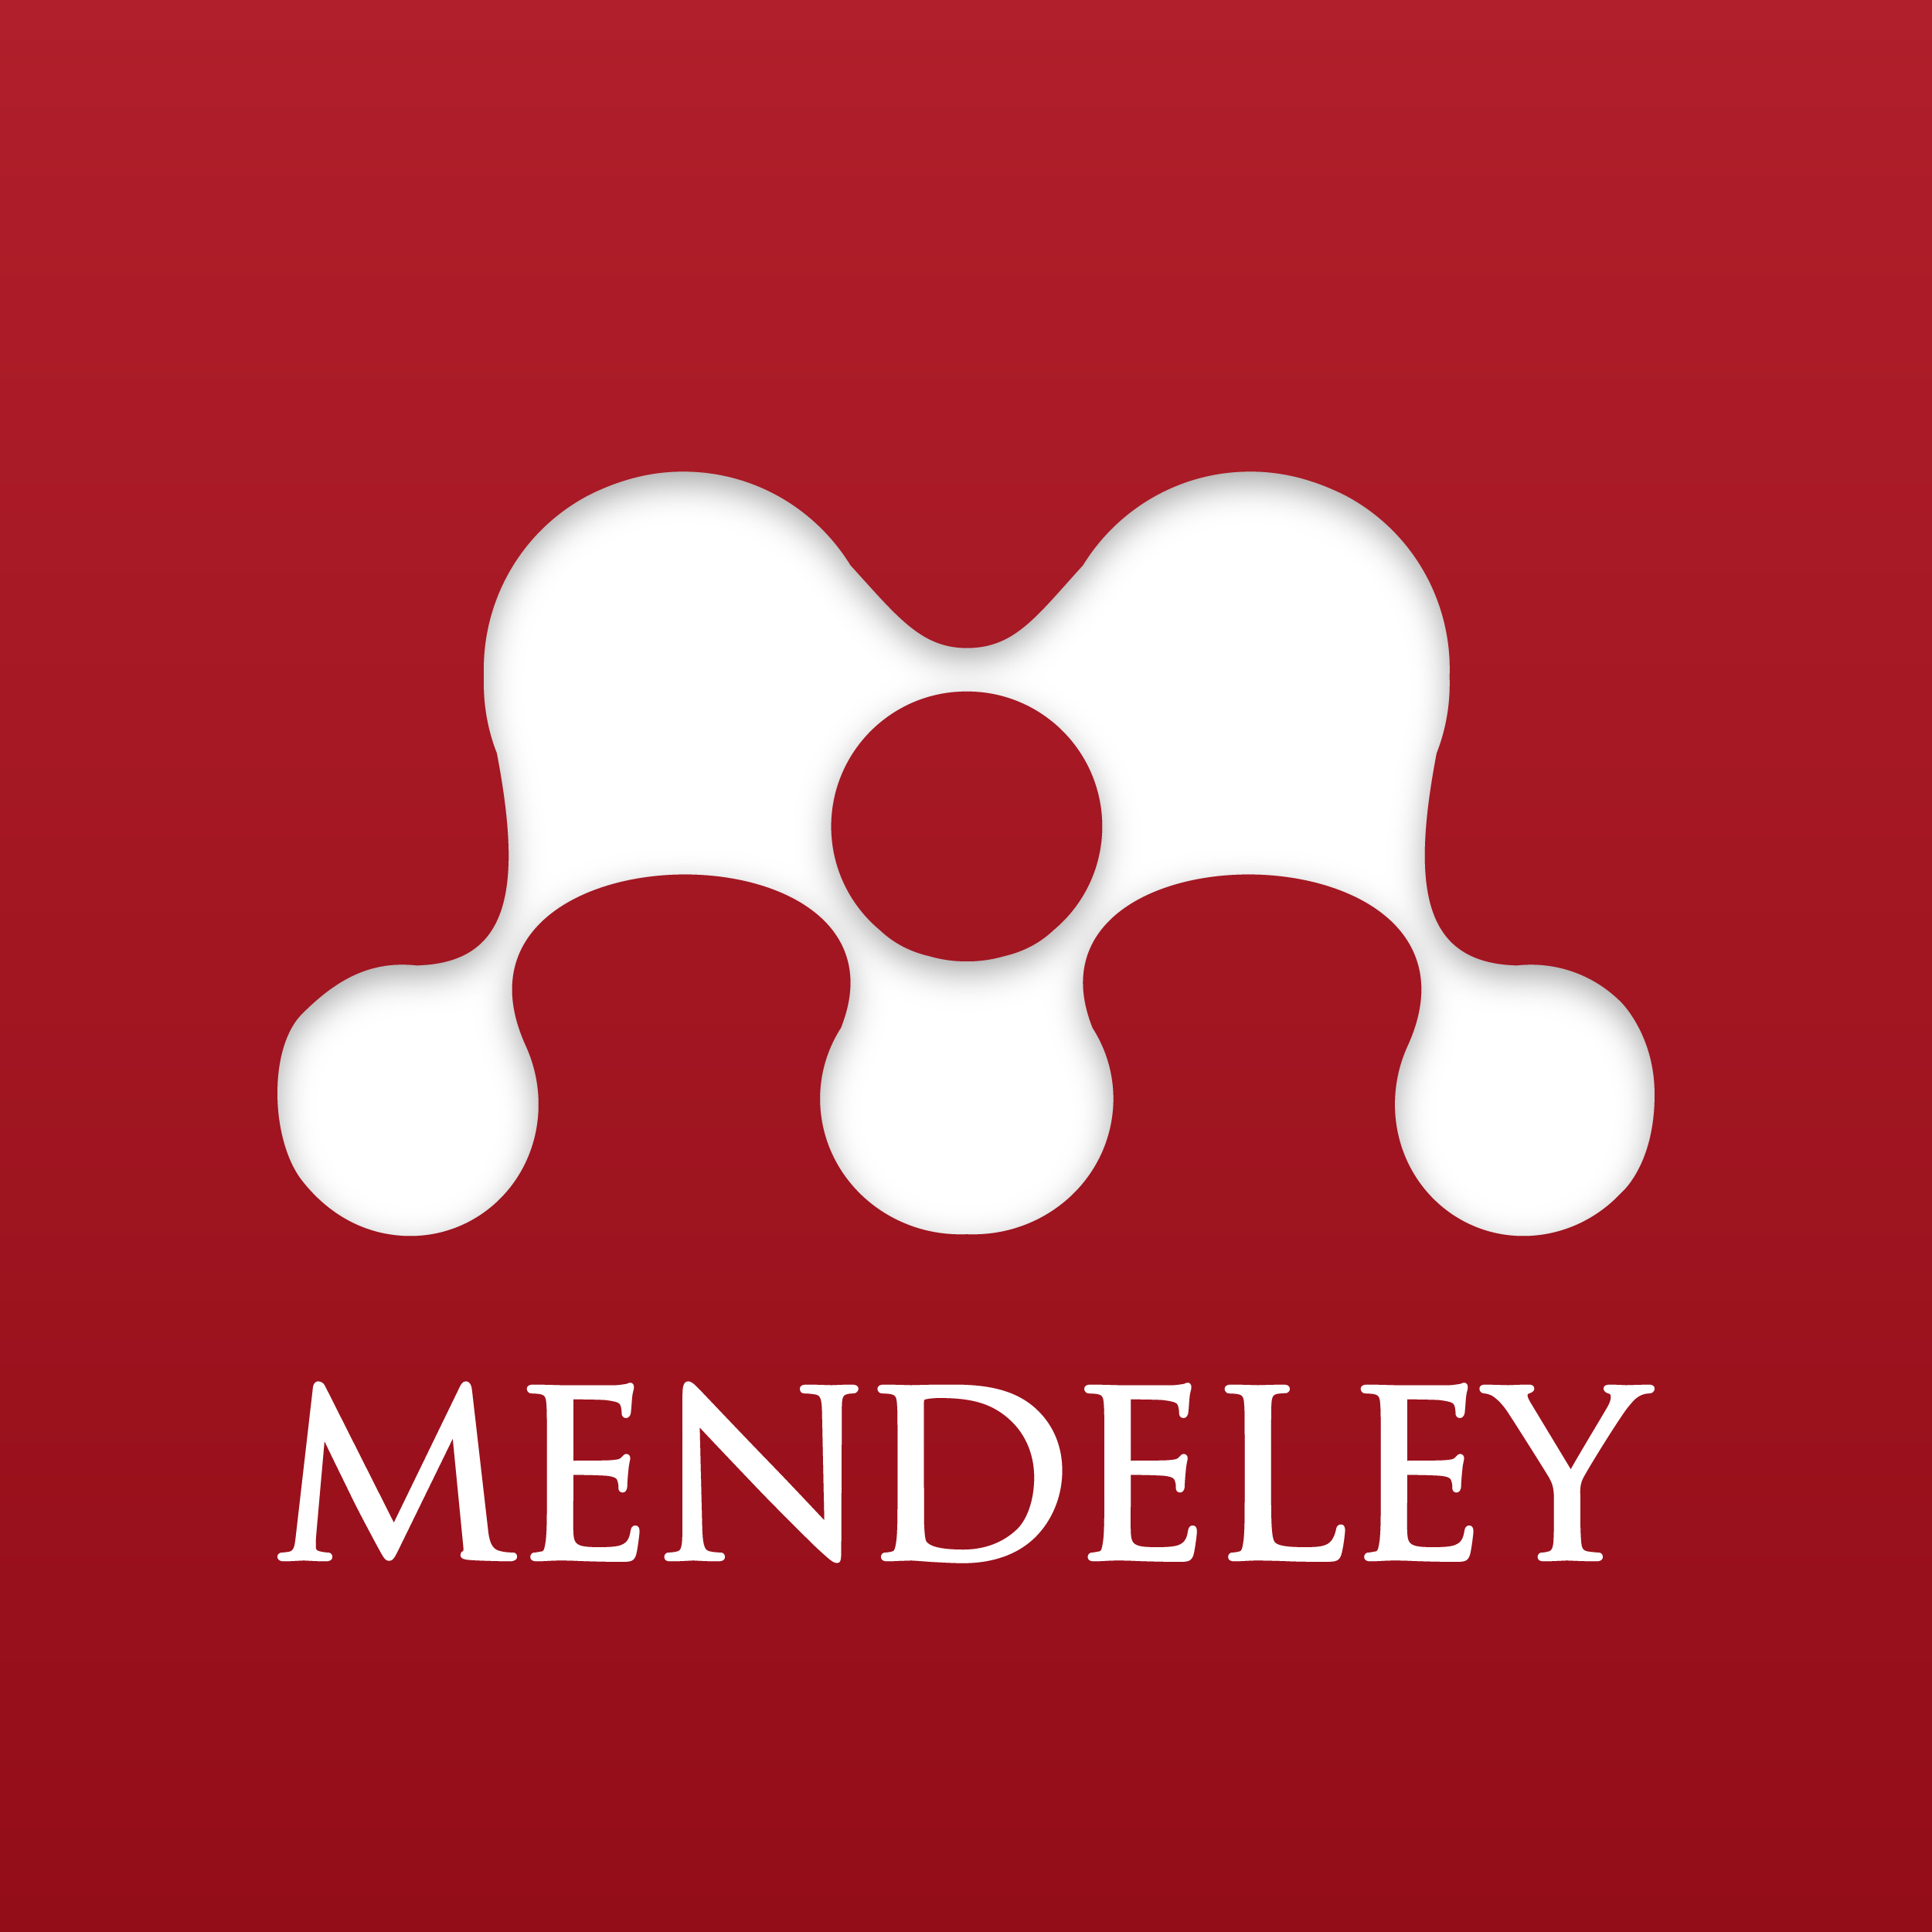 Mendeley - Wikipedia bahasa Indonesia, ensiklopedia bebas